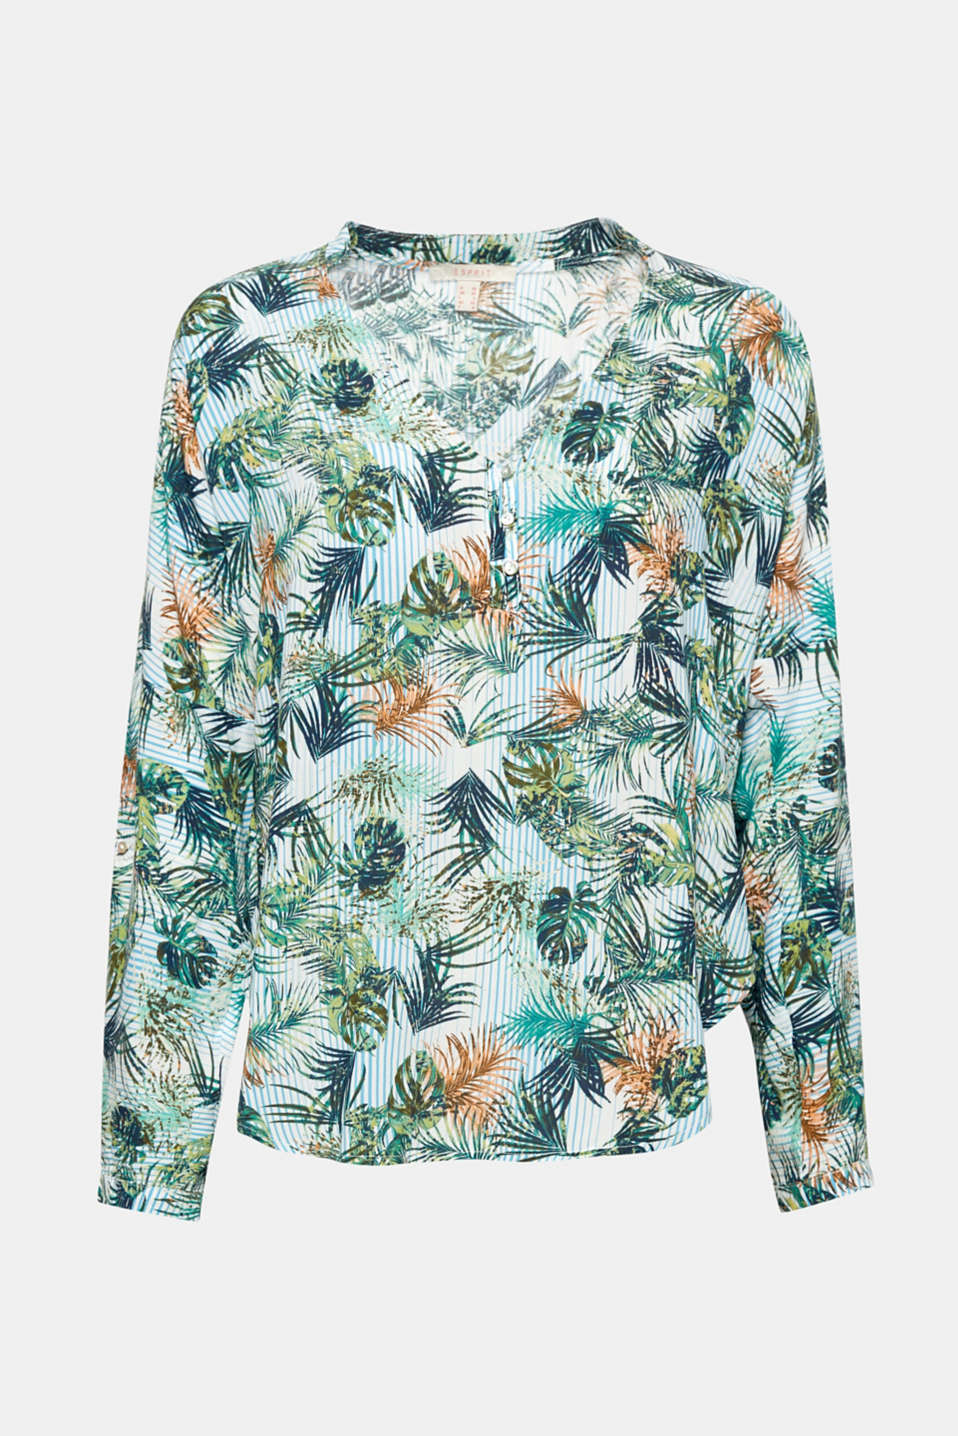 The colourful parrot print brings spring and designer flair to this lightweight Henley blouse with adjustable turn-up sleeves!